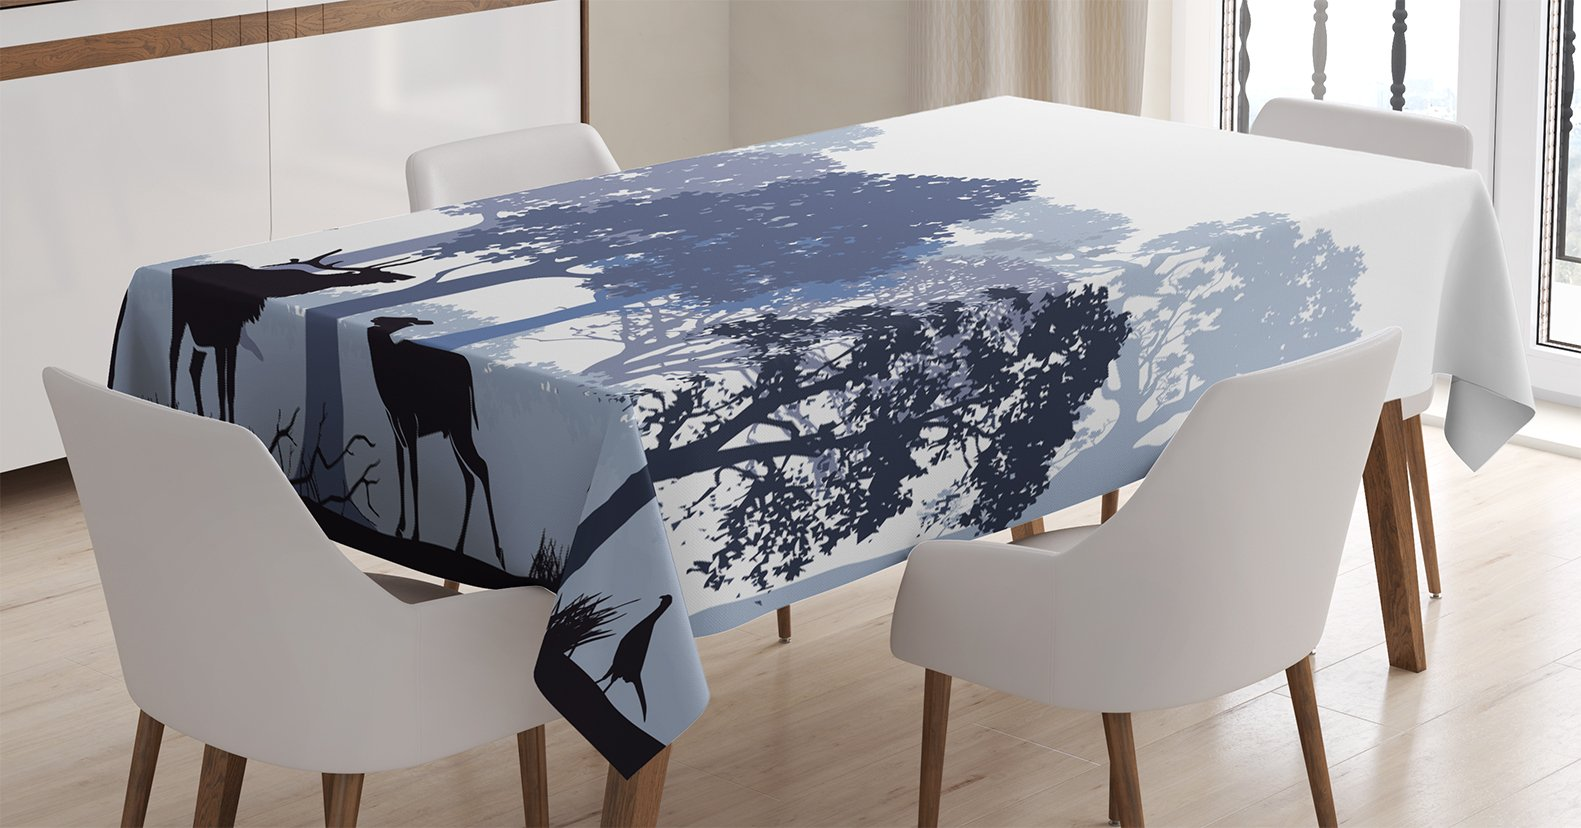 Ambesonne Moose Tablecloth, Gray Forest Design Abstract Woods North American Wild Animals Deer Hare Elk Trees, Dining Room Kitchen Rectangular Table Cover, 60 X 84 inches